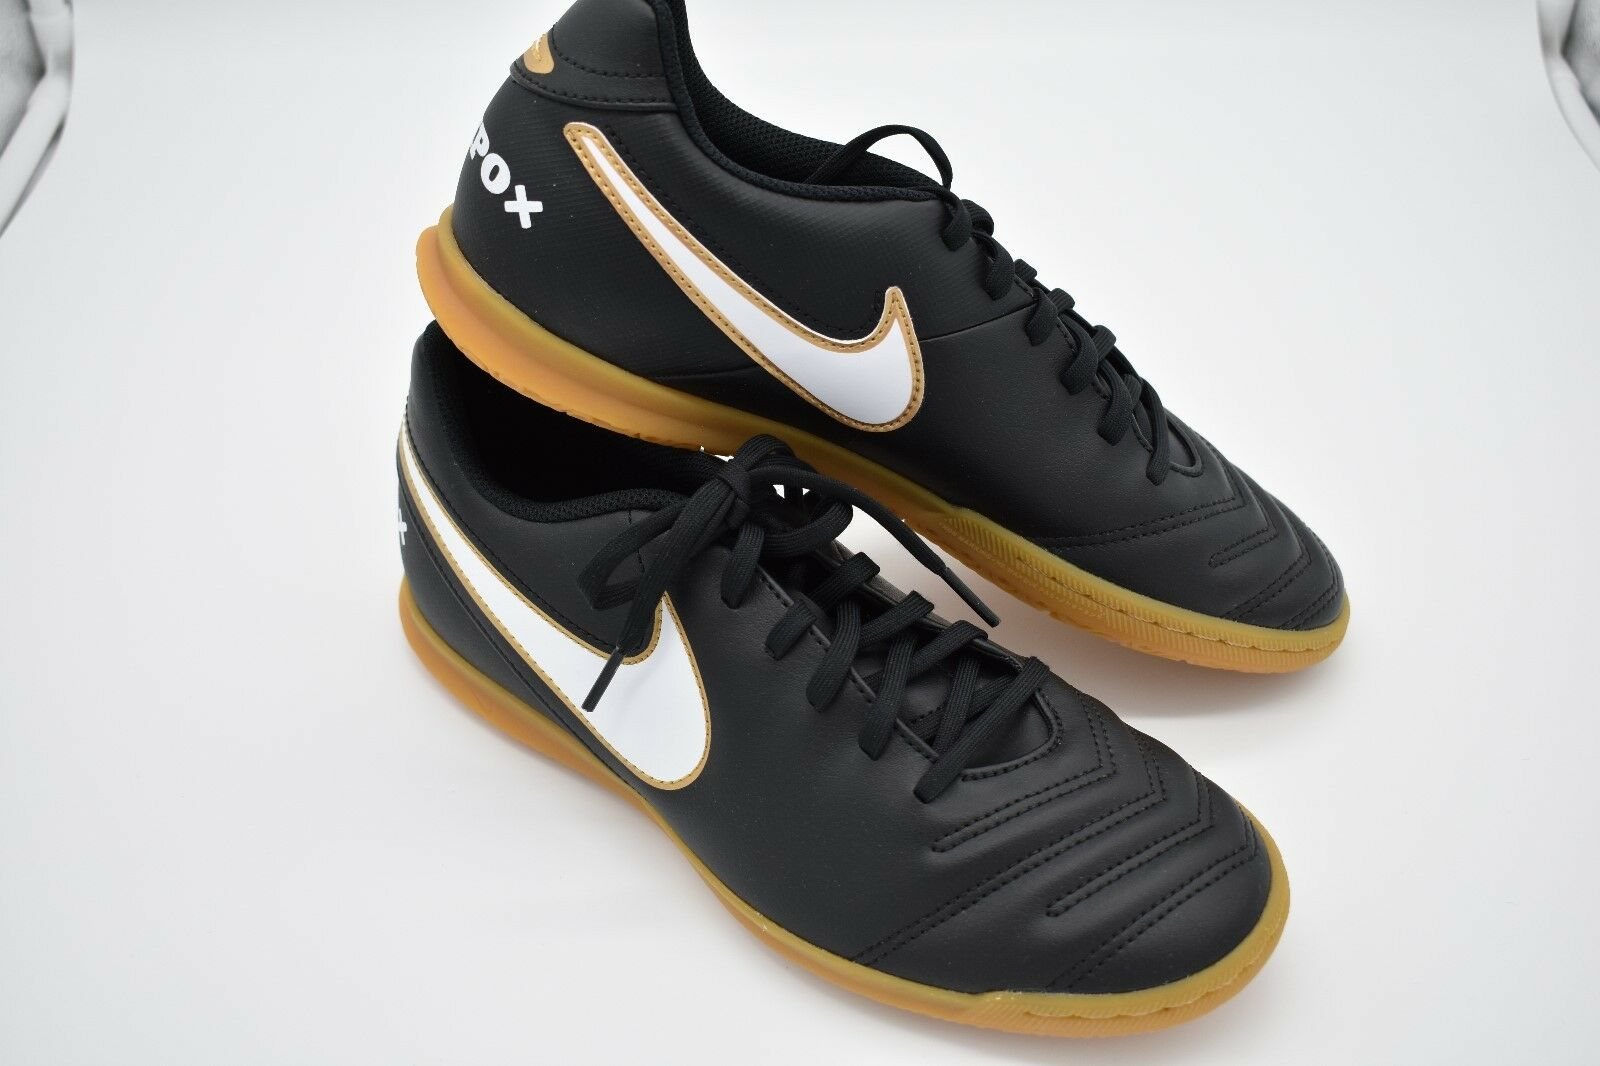 Nike Tiempo Rio III IC Men's Indoor Soccer Shoe 819234-010 Black Comfortable The most popular shoes for men and women